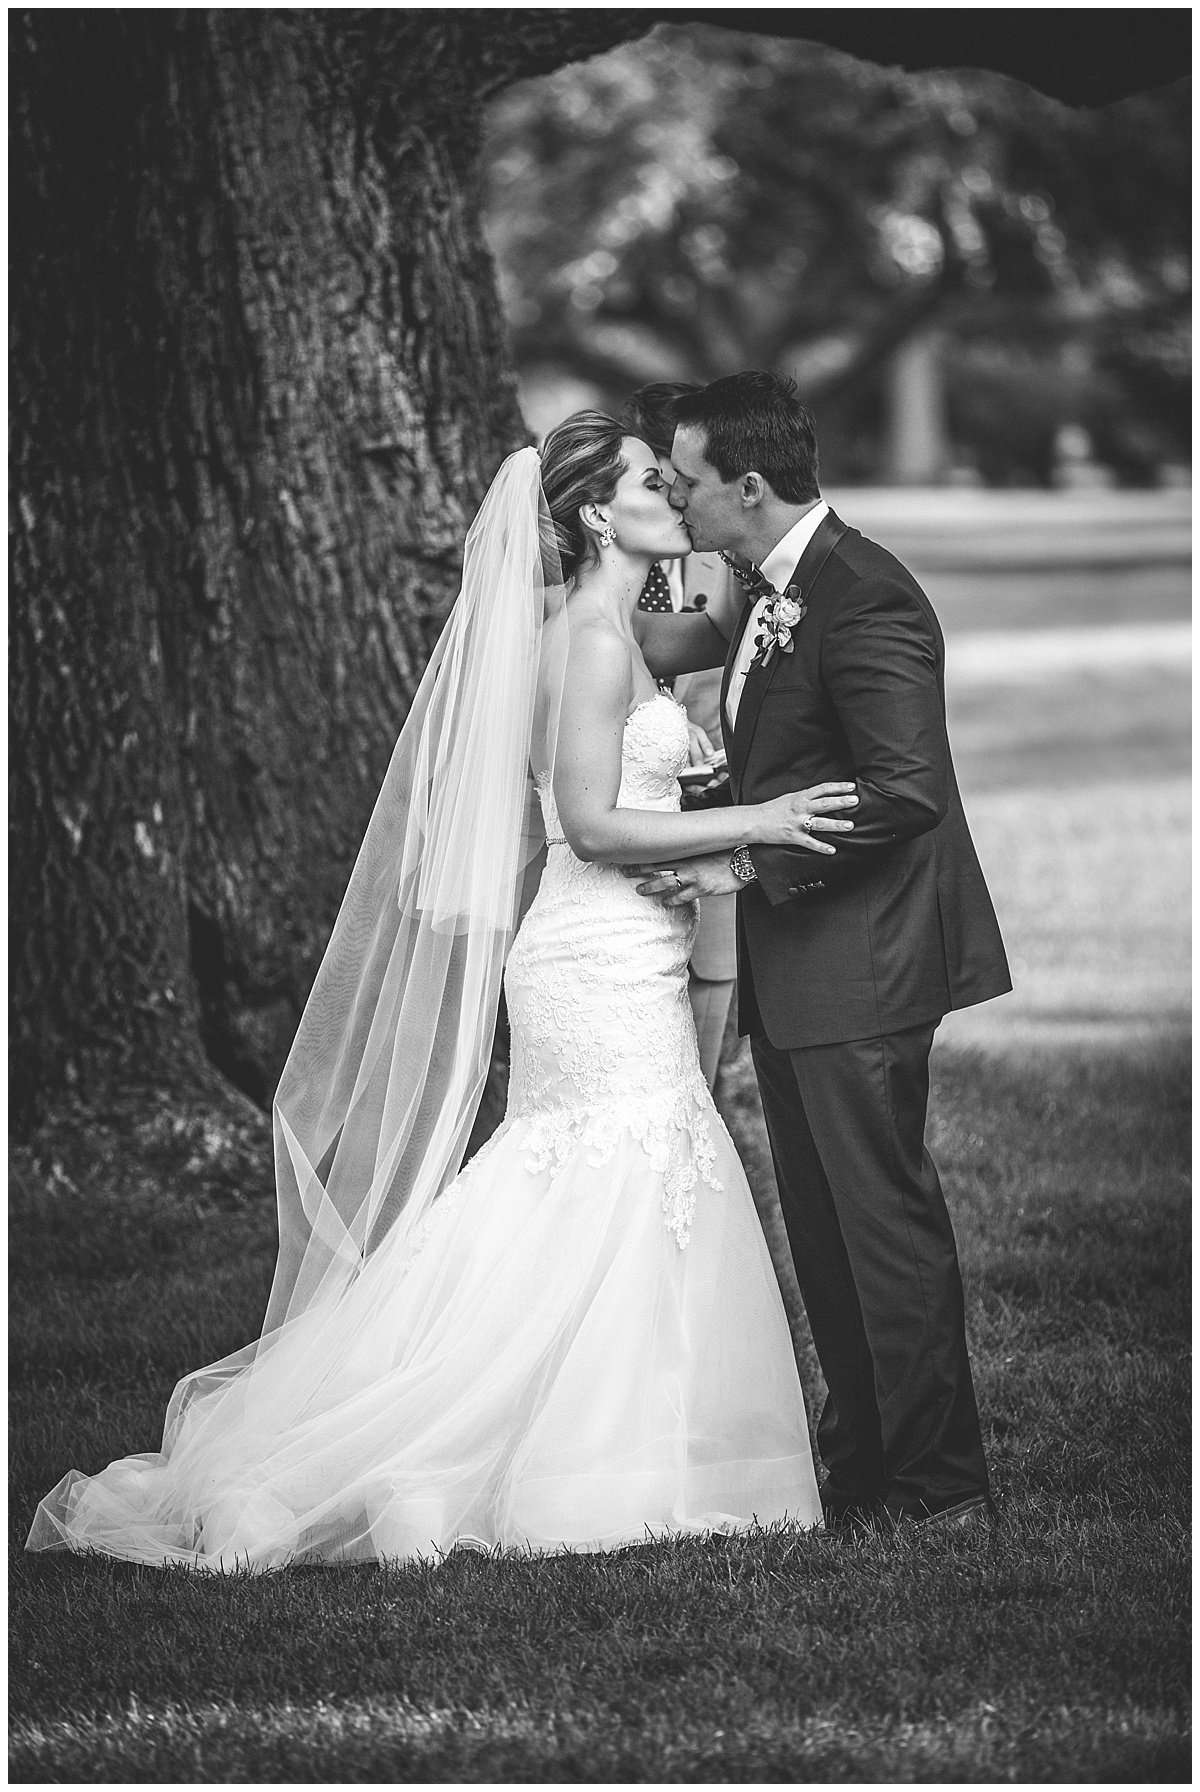 Kim & Lee | A Summer Wedding at Brookside Country Club 130